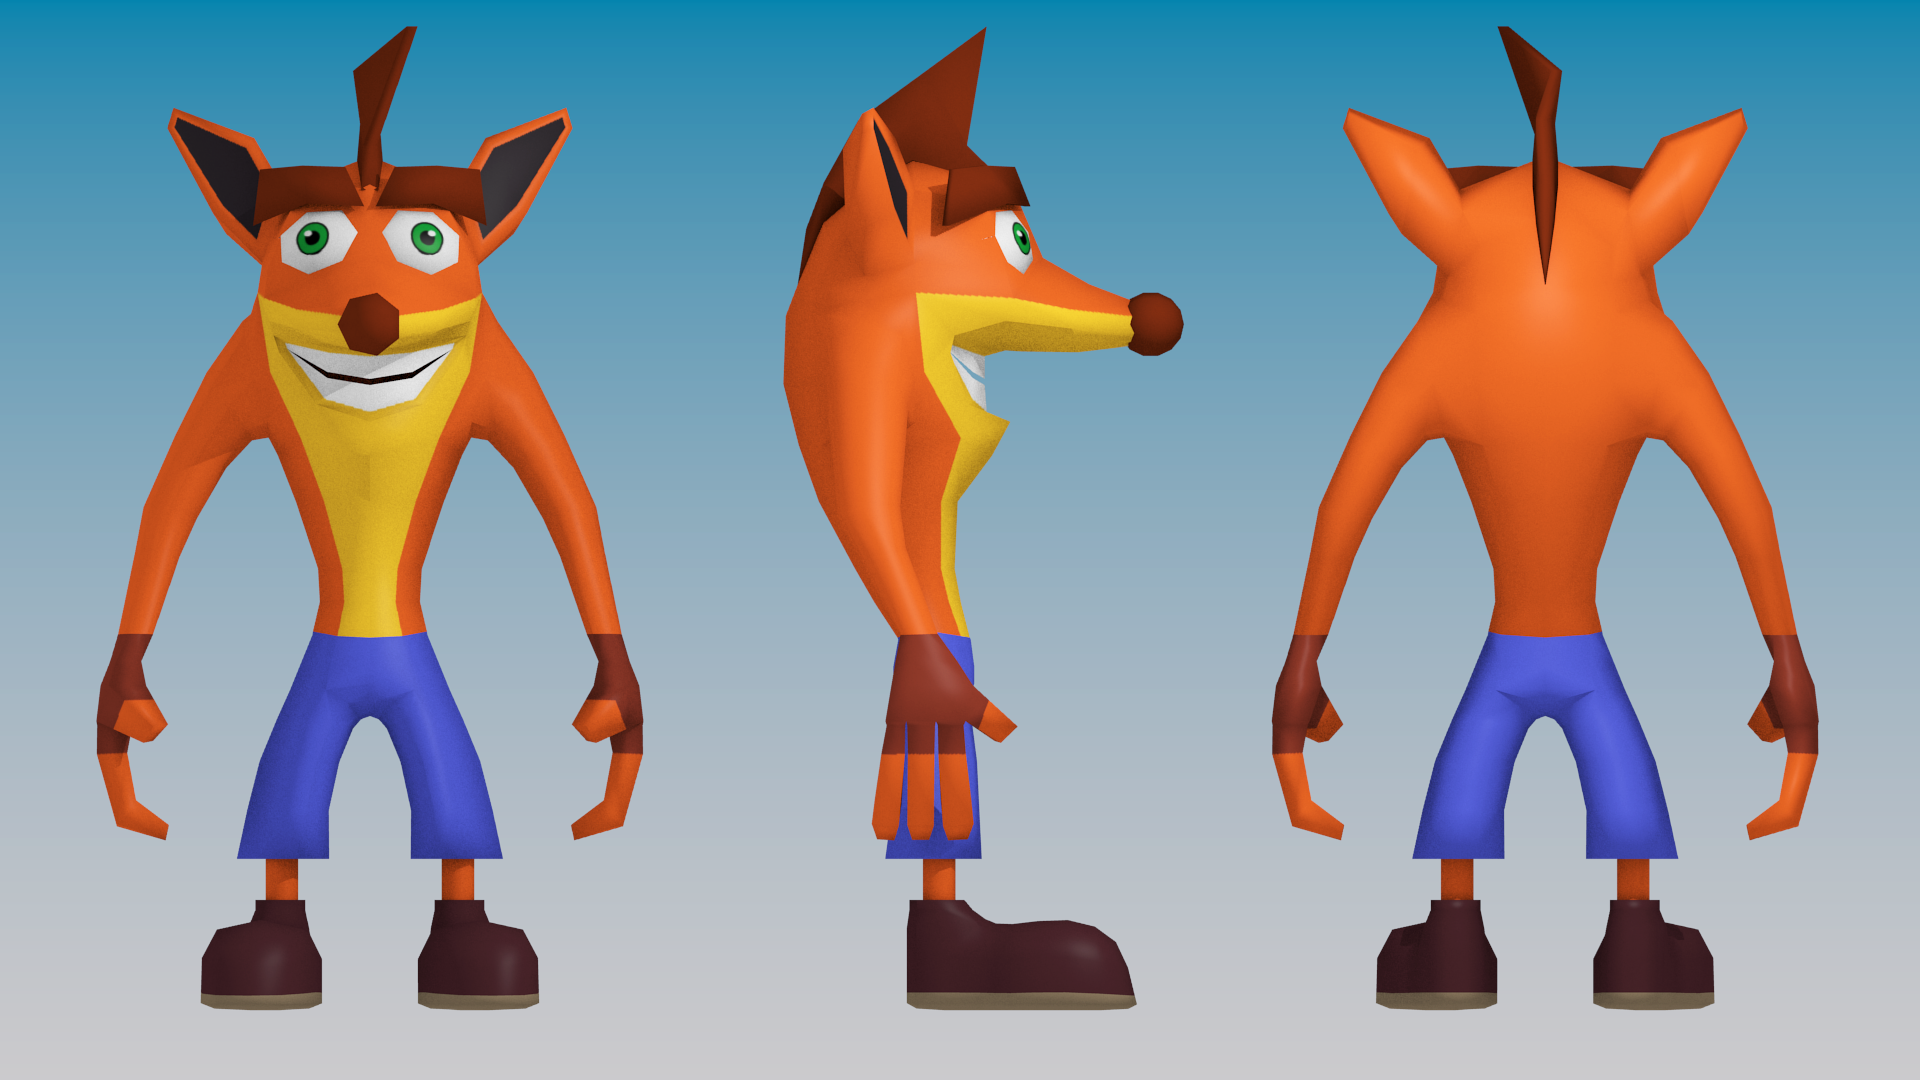 Steam community crash bandicoot 3d model download malvernweather Gallery